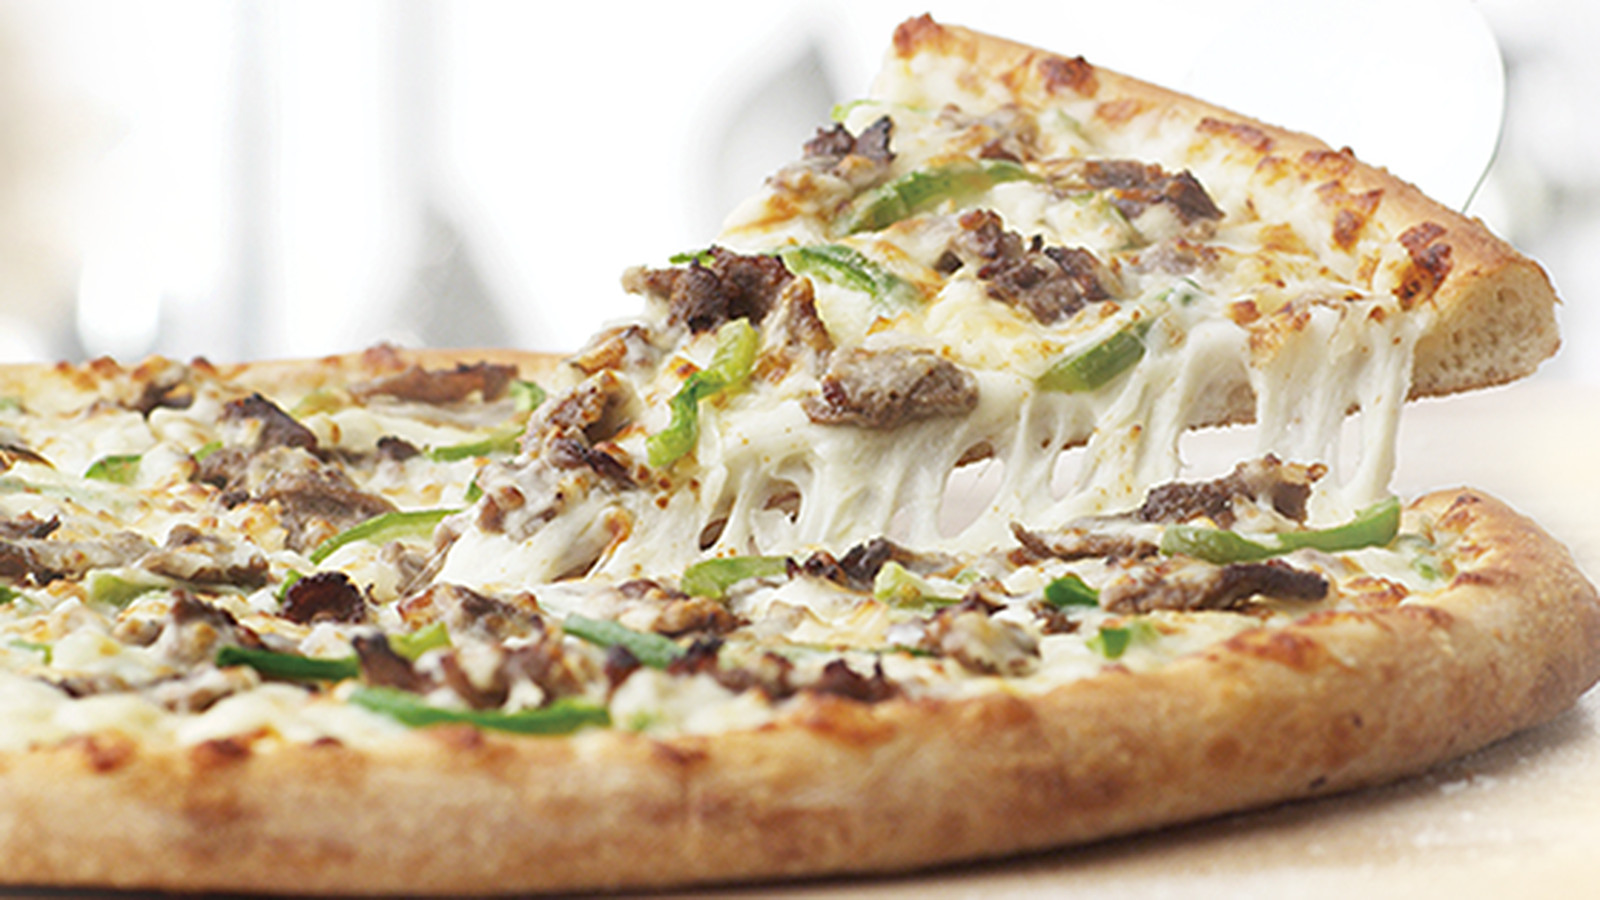 ... Put Out a Philly Cheesesteak Pizza for the Holidays - Eater Philly